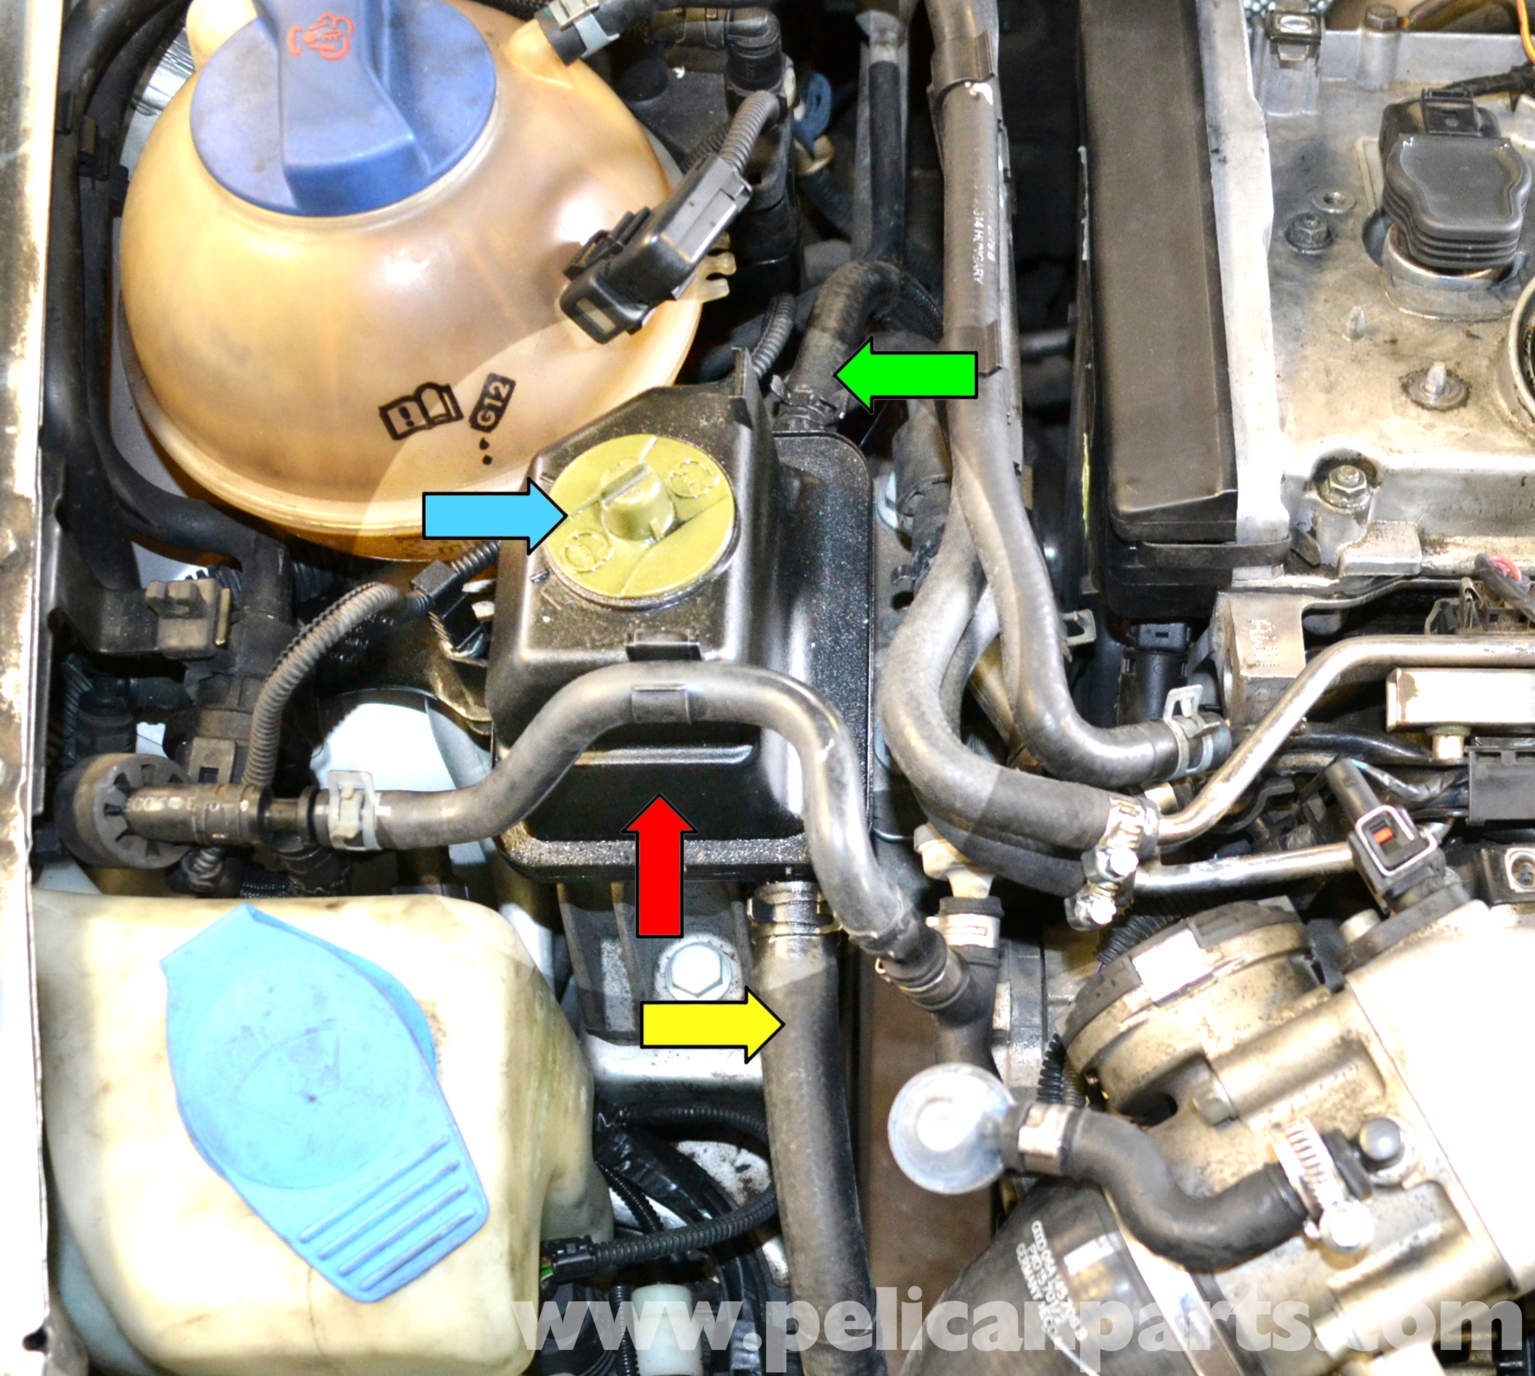 2006 Saturn Vue Transmission Problems Lawsuit Wiring Images Gallery 1535x1376